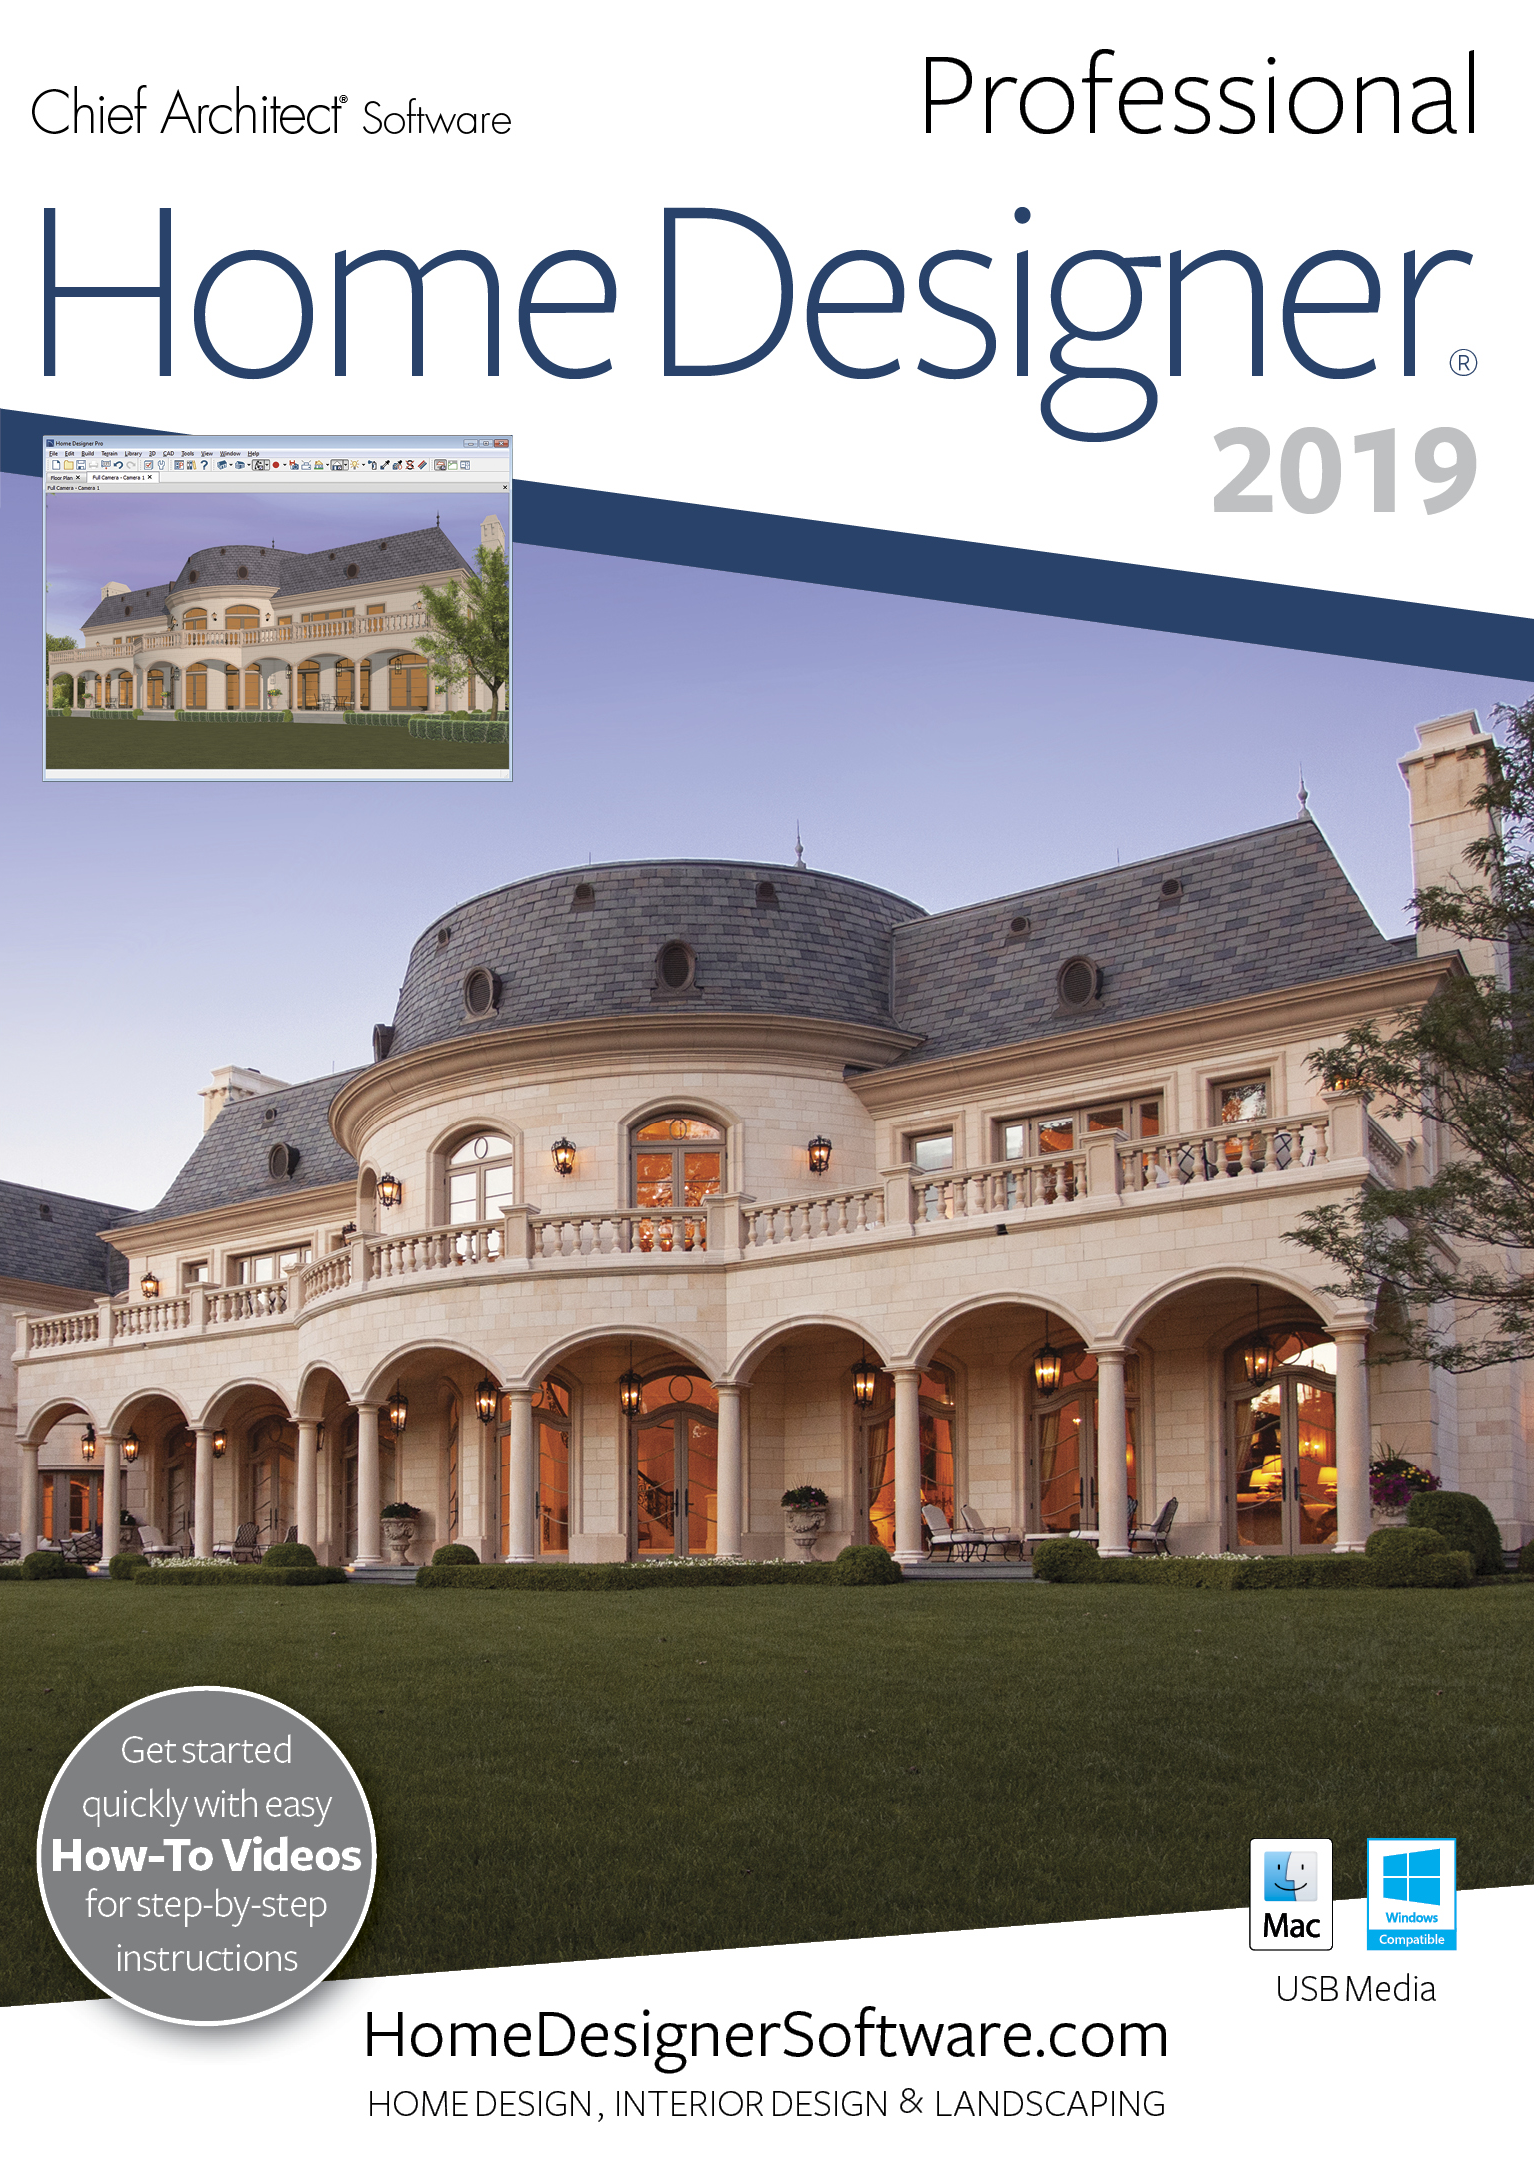 Home Designer Pro 2019 - Mac Download [Download] (Home Design Software Mac)